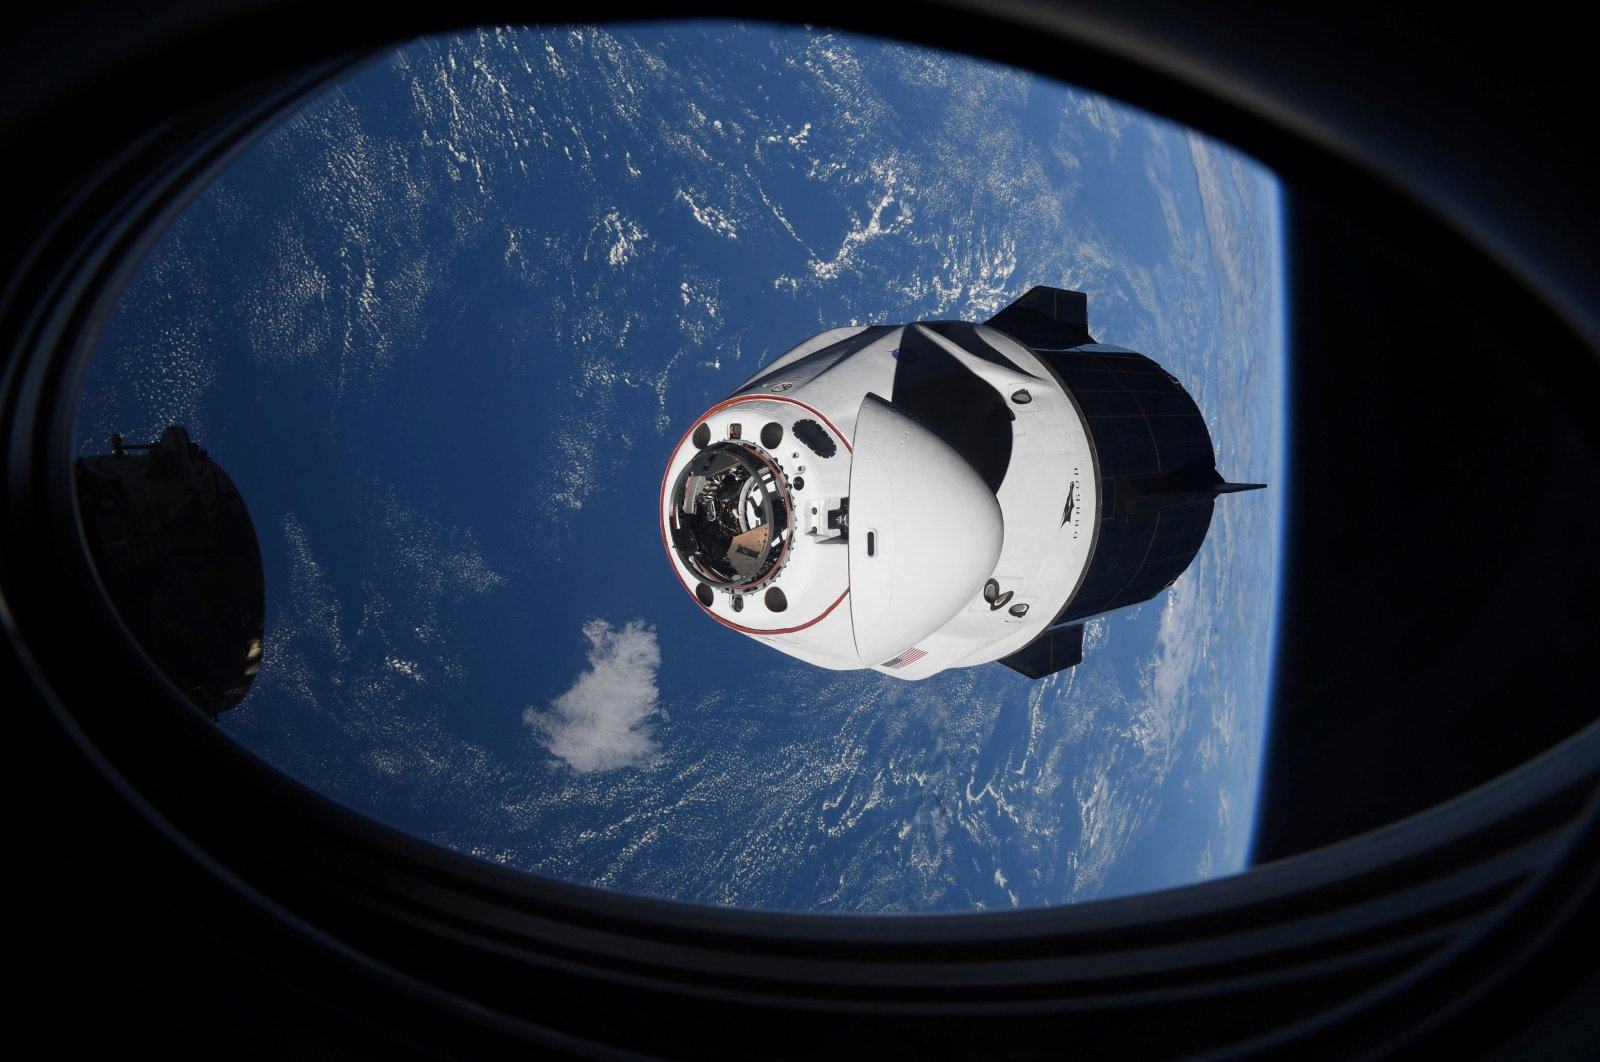 The SpaceX Crew Dragon capsule Endeavor, carrying four astronauts, approaches the International Space Station orbiting the Earth, April 24, 2021. (Reuters Photo)